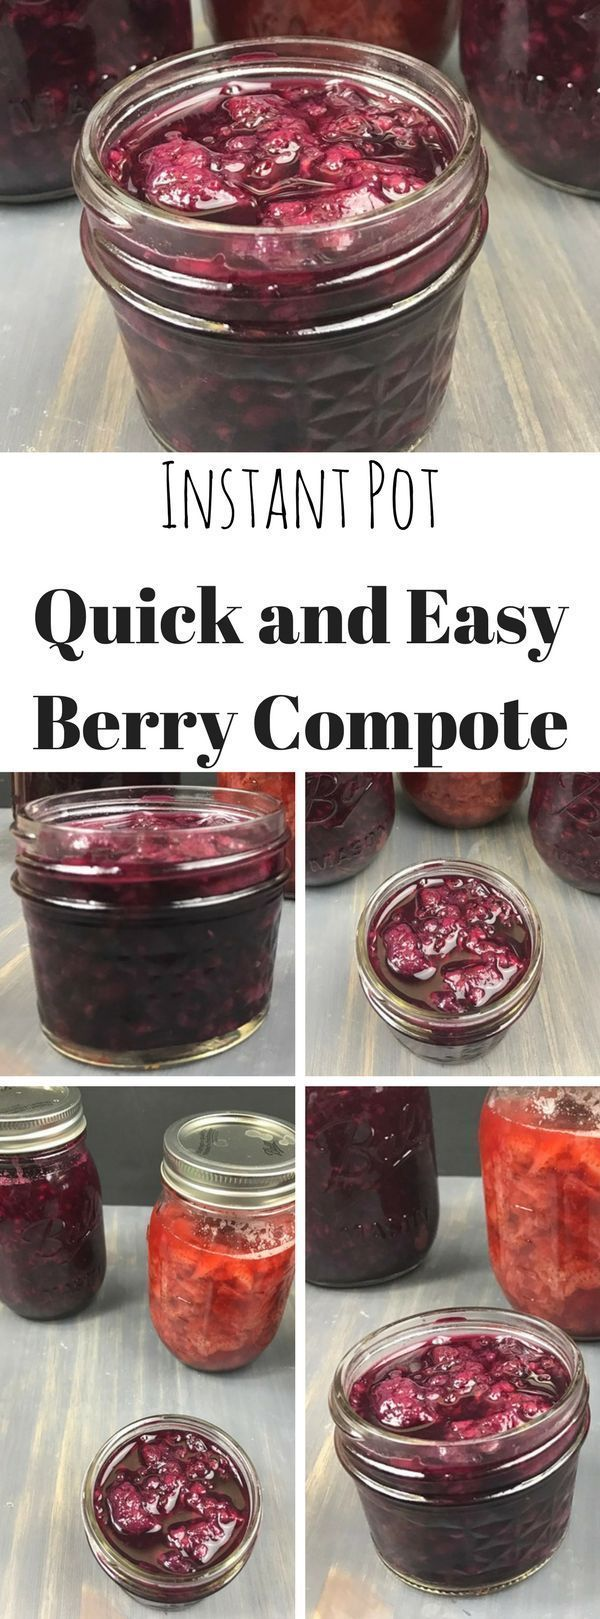 Quick and Easy Instant Pot Berry Compote